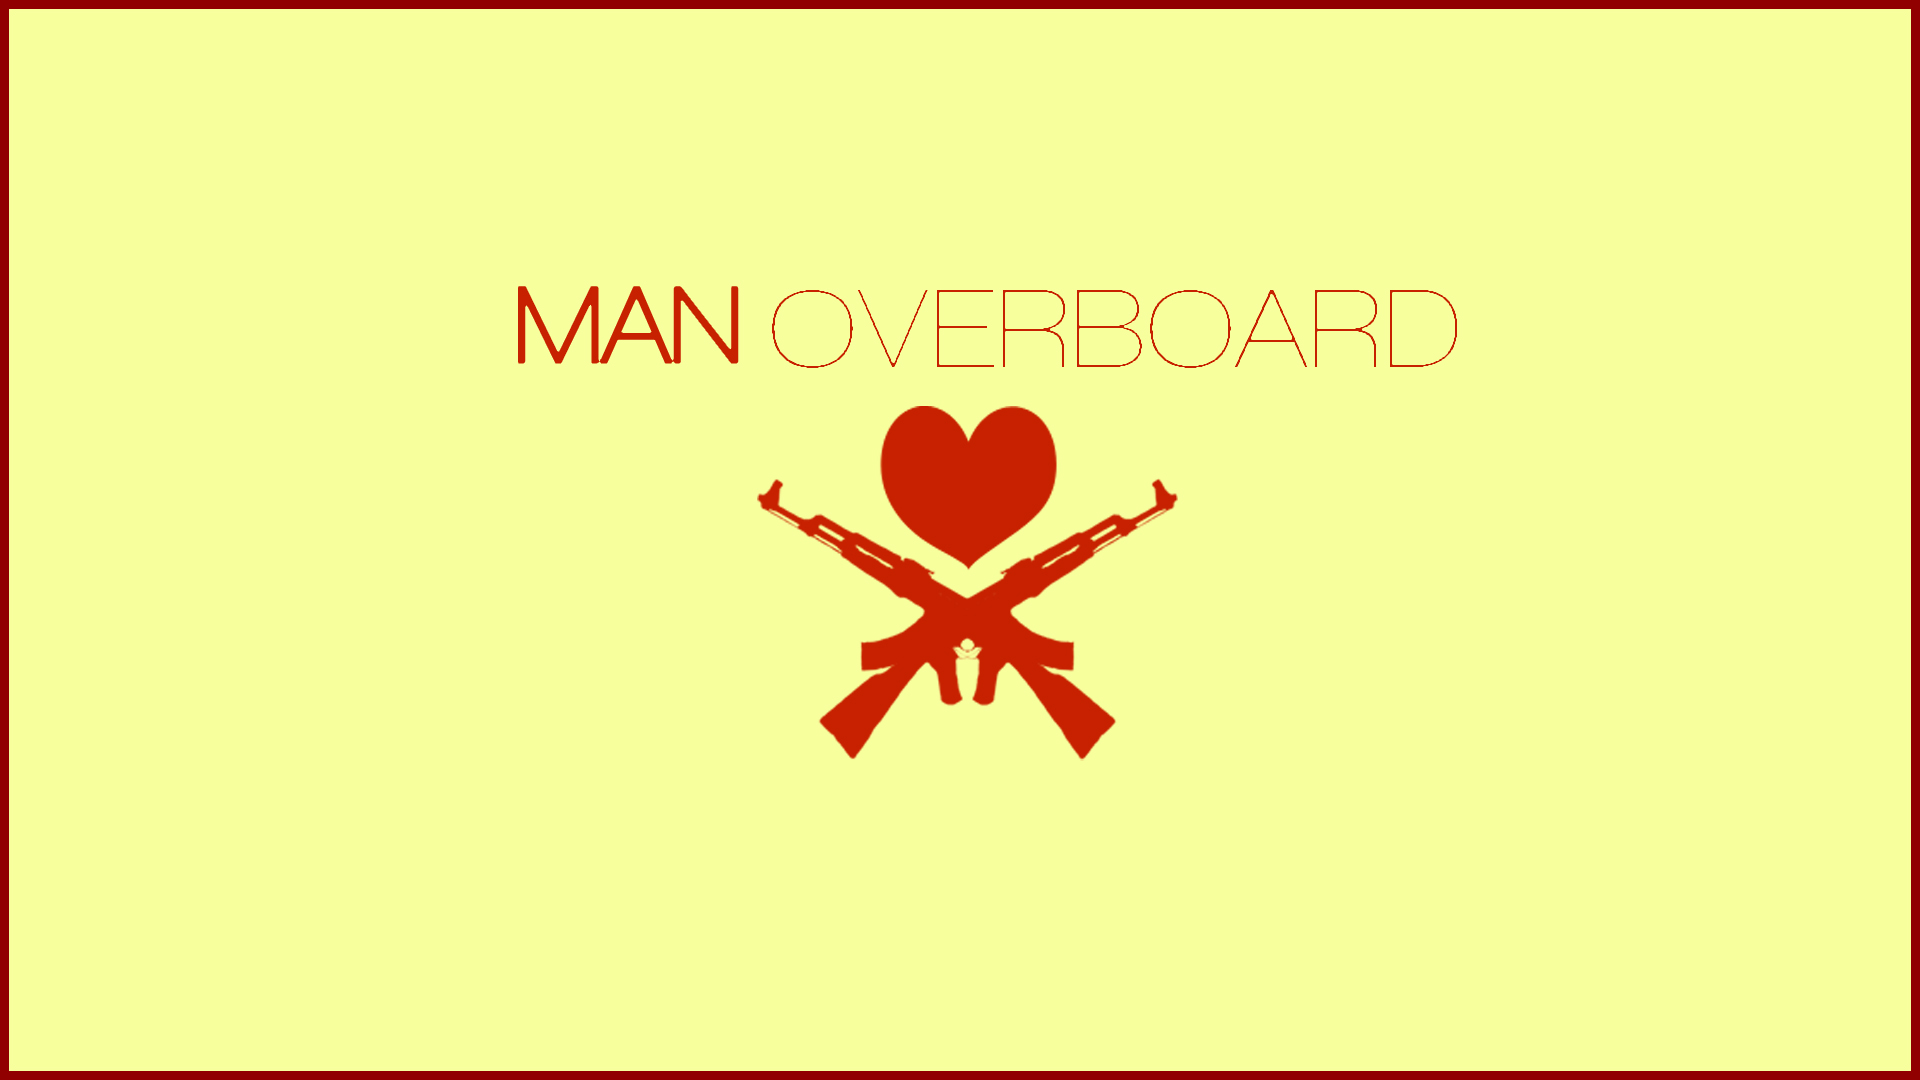 wallpaper man overboard - Pesquisa do Google | We Heart It